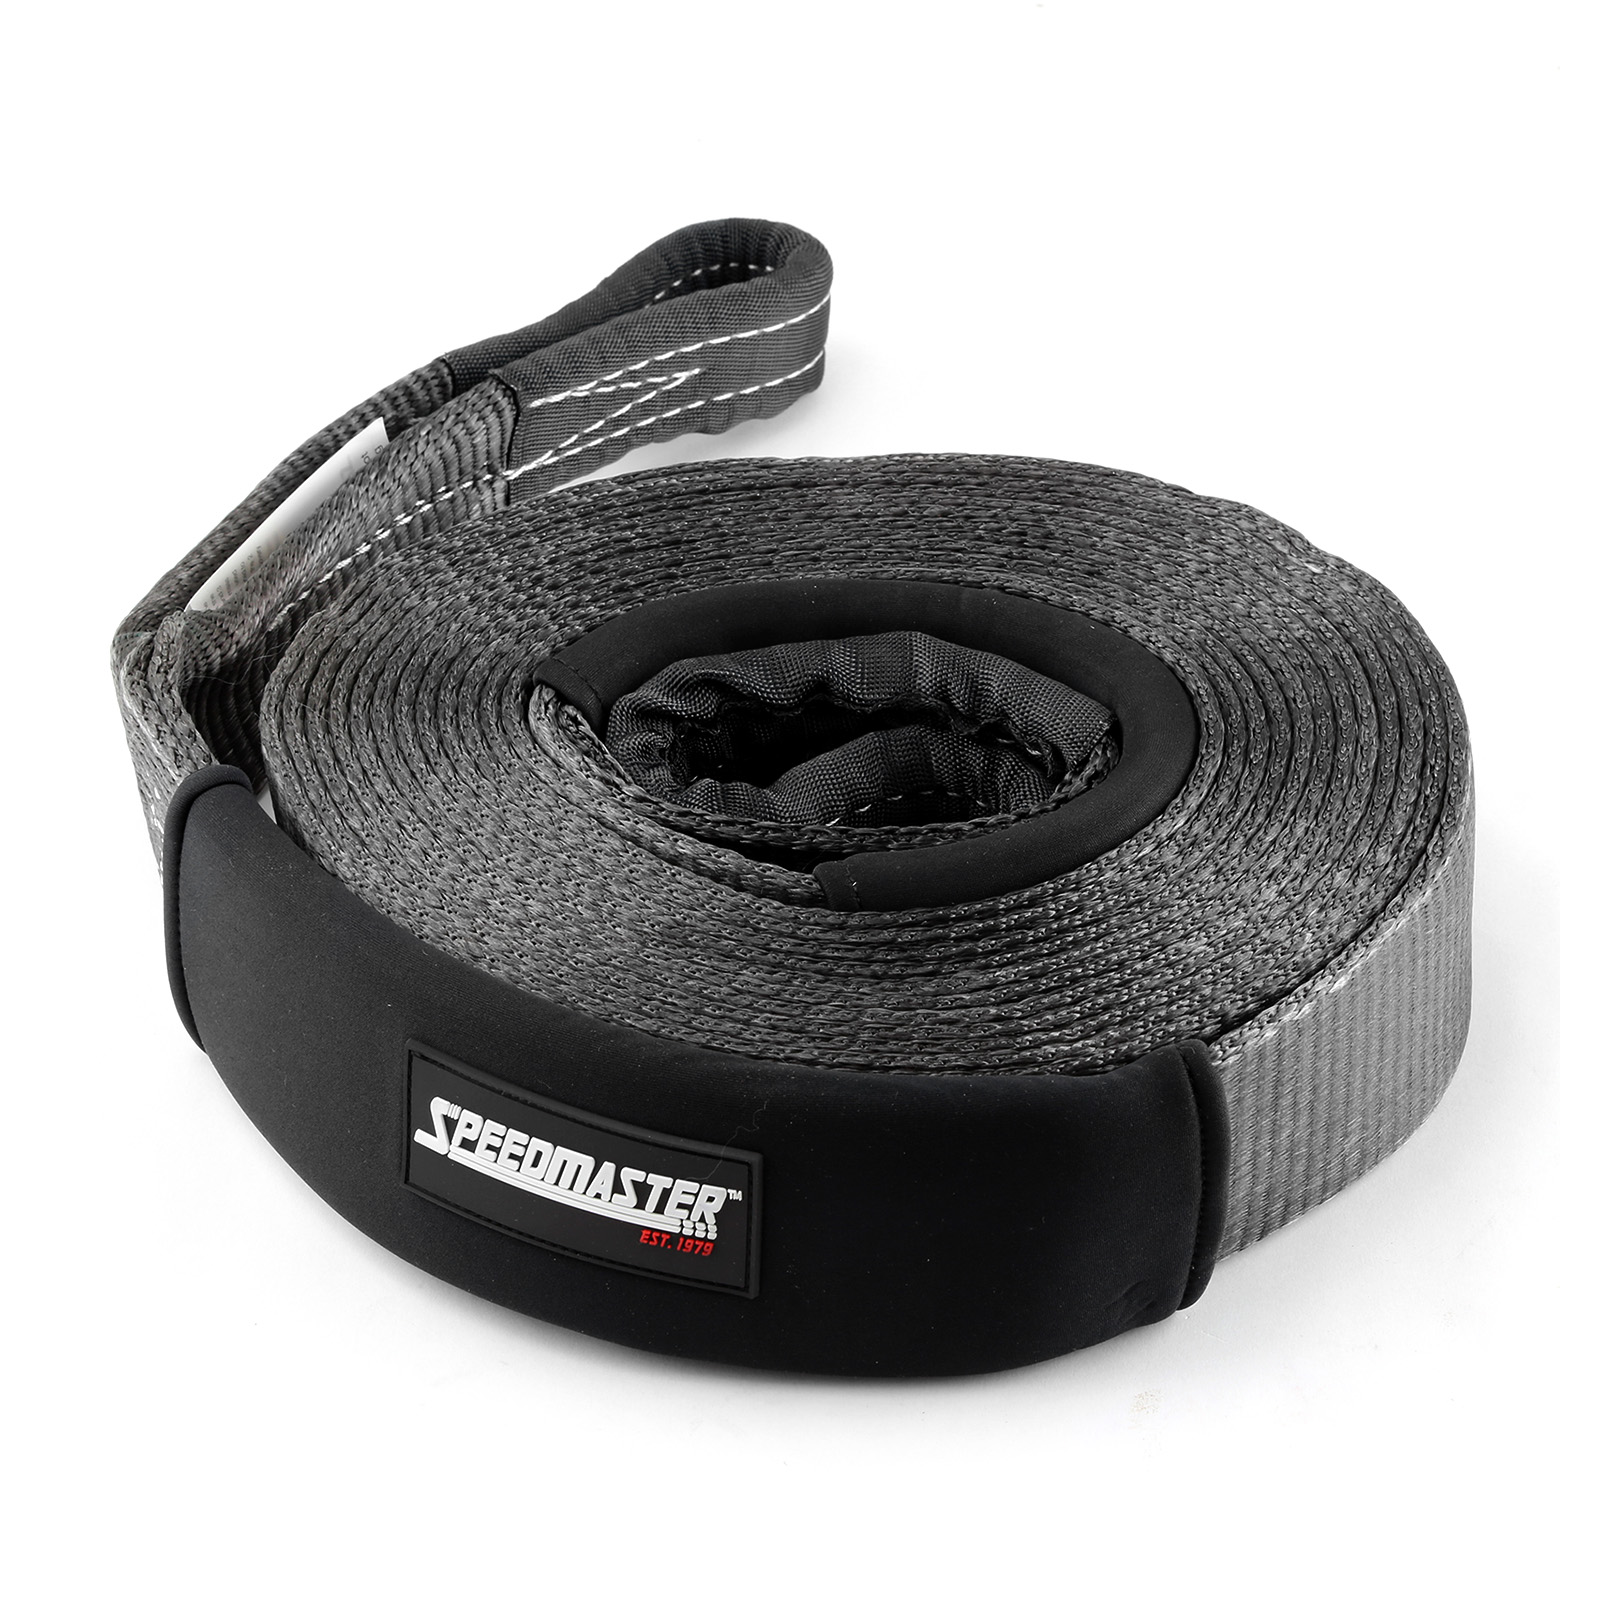 "Speedmaster 24000lbs / 11000kgs 4wd Recovery Snatch Strap 3"" x 30ft"